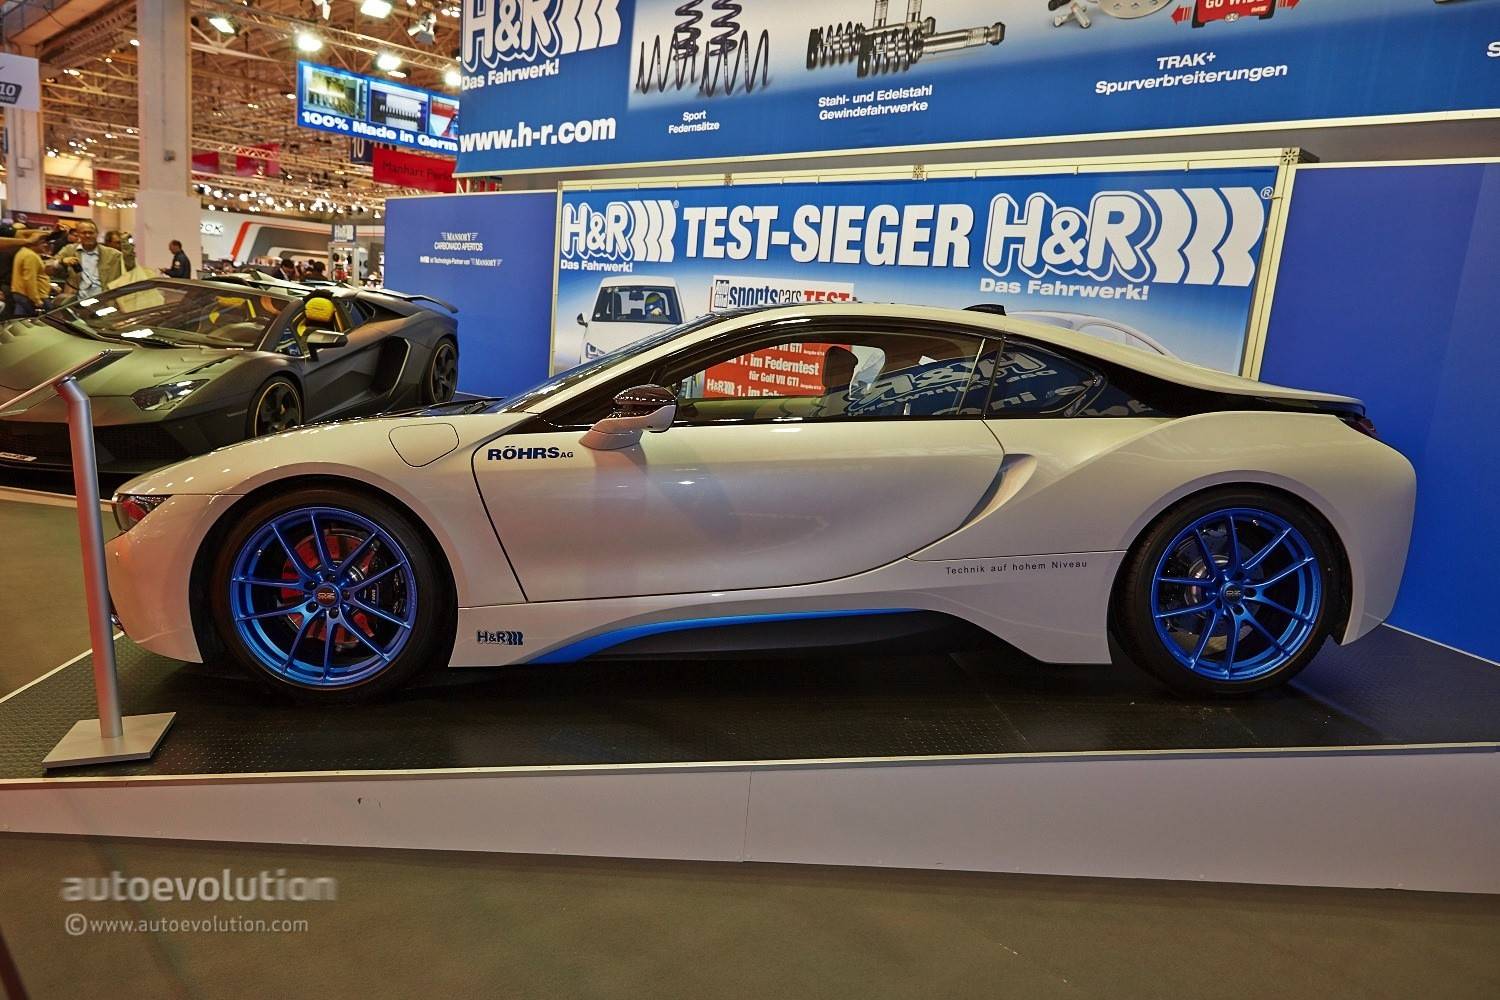 H R Bmw I8 Has A Lowered Stance At The Essen Motor Show 2014 Live